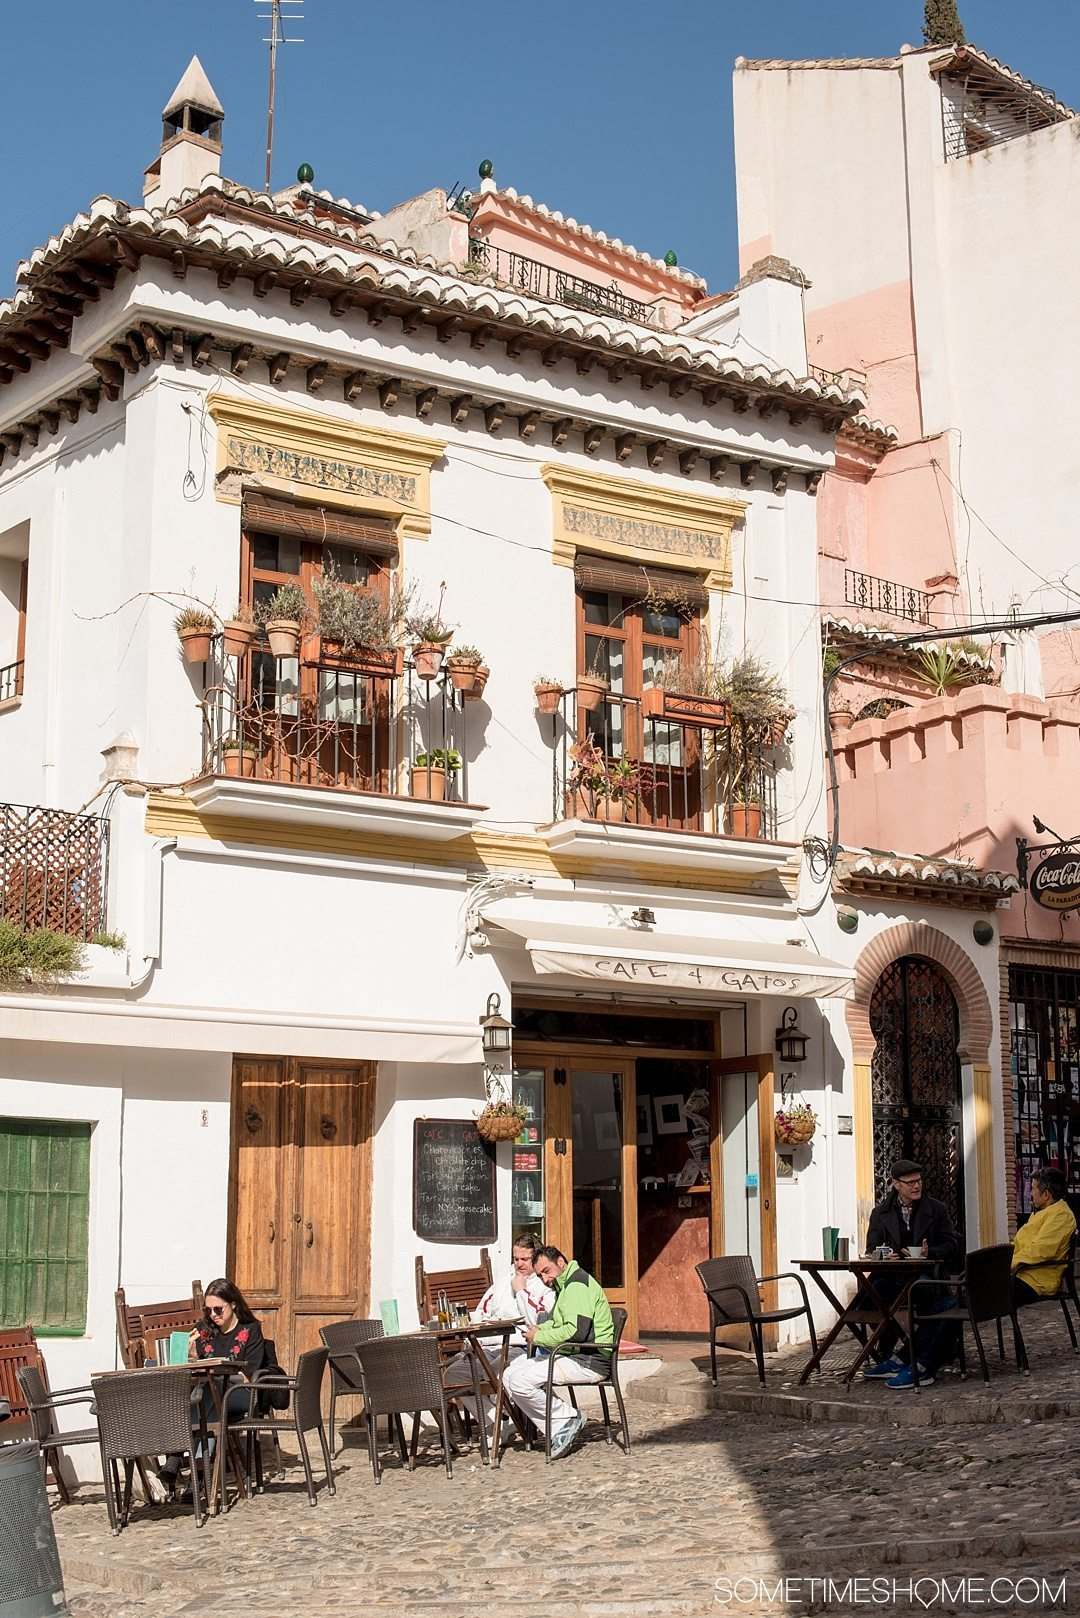 One Perfect Day in Granada Spain. Photos and itinerary on Sometimes Home travel blog. Picture of Cafe Gatos, where you can see the Alhambra.